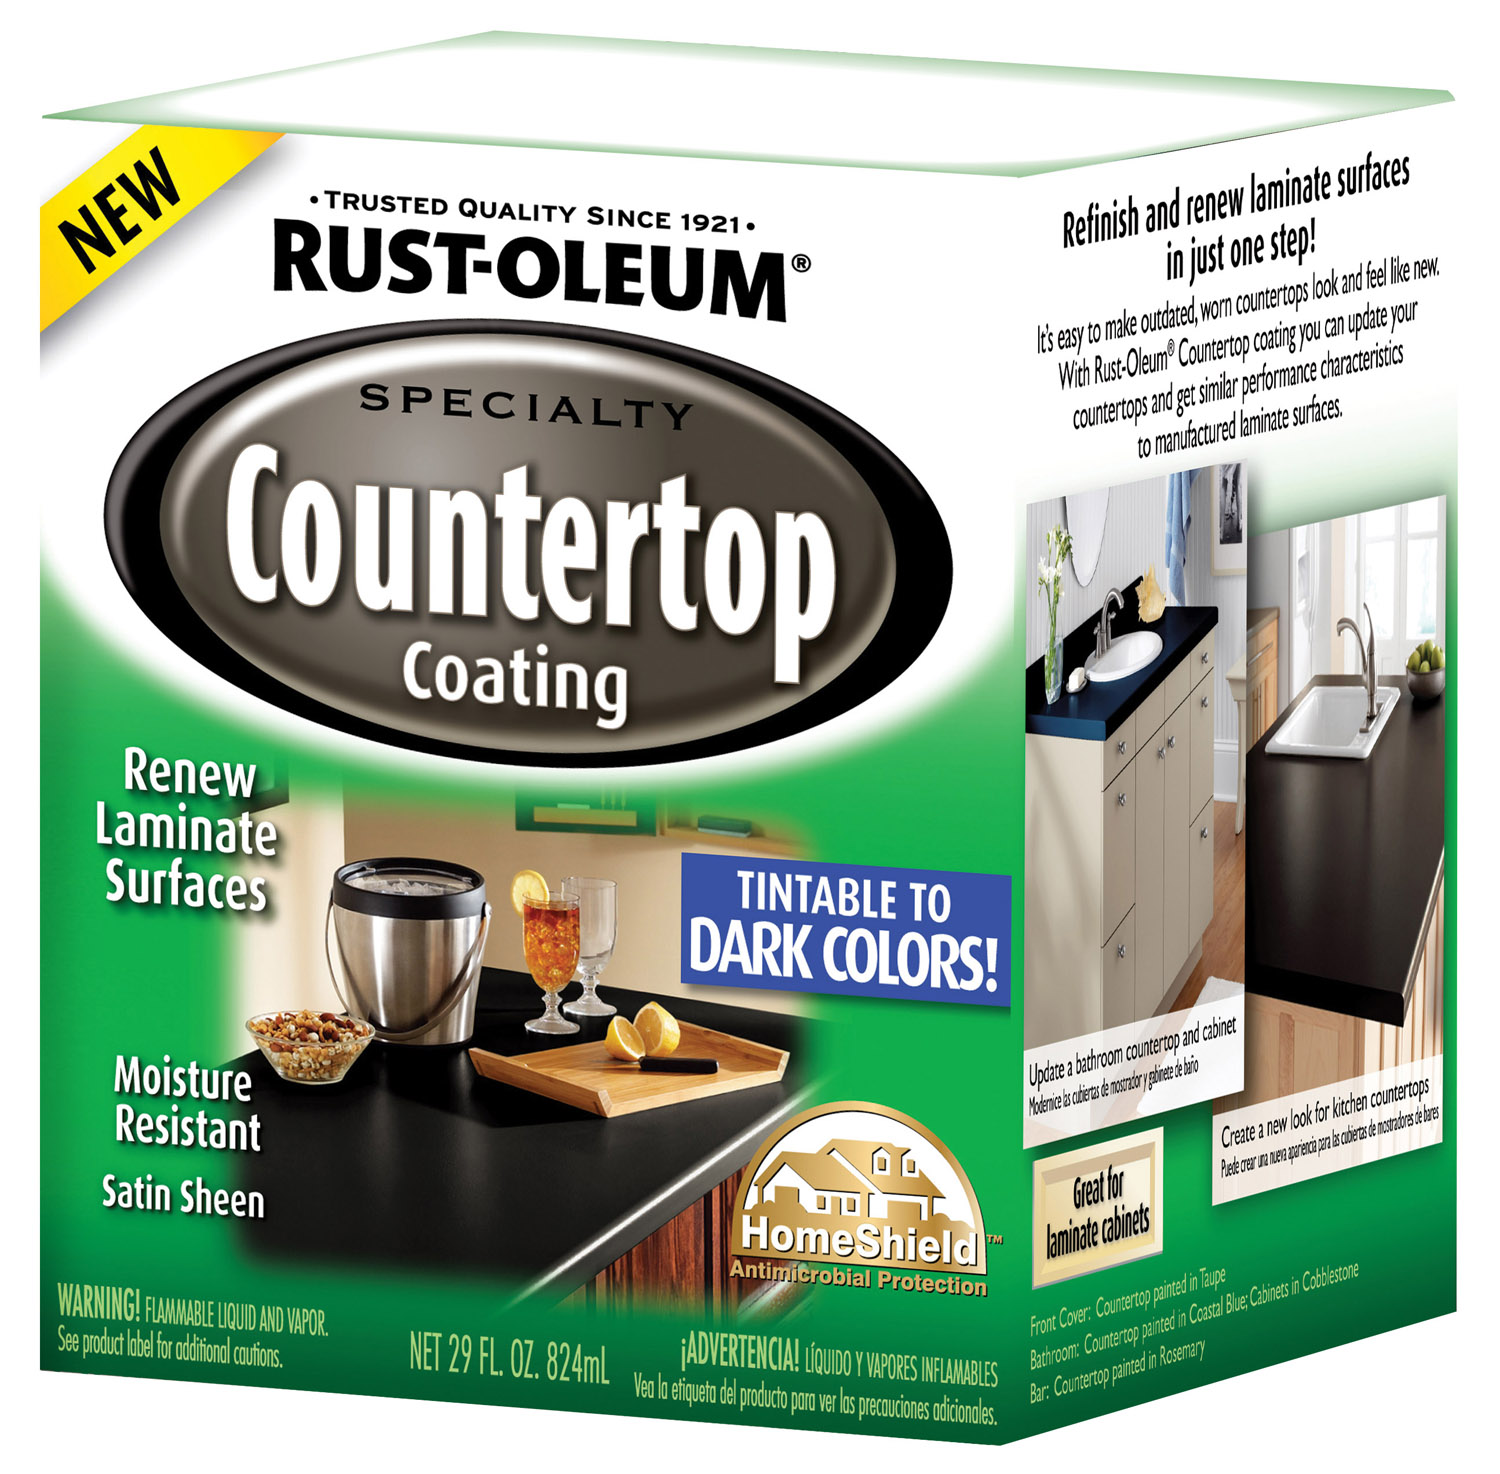 Rustoleum discount coupons